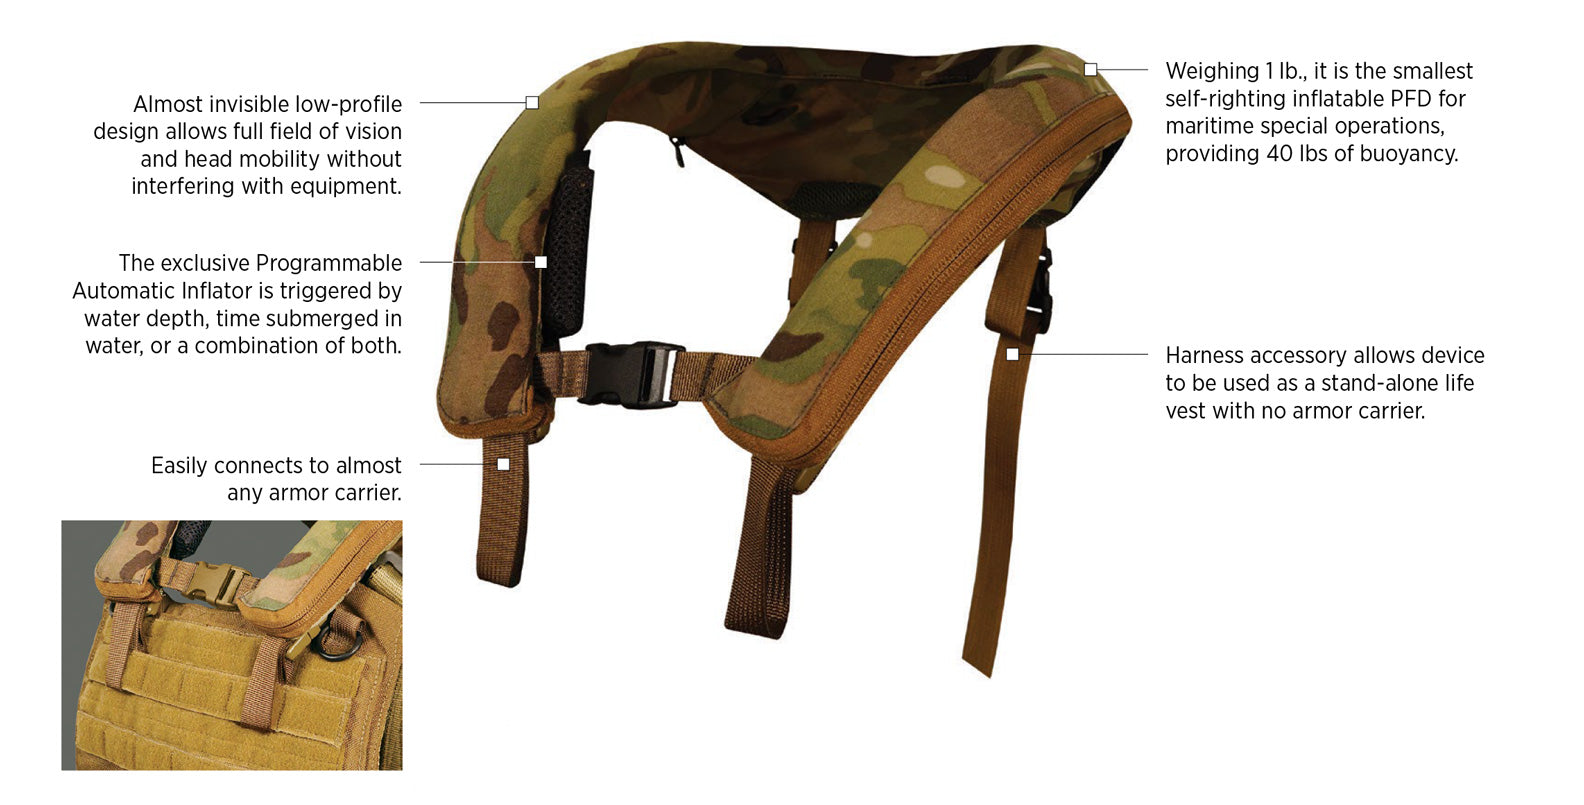 Ratis™ Special operations inflatable LPU infograph